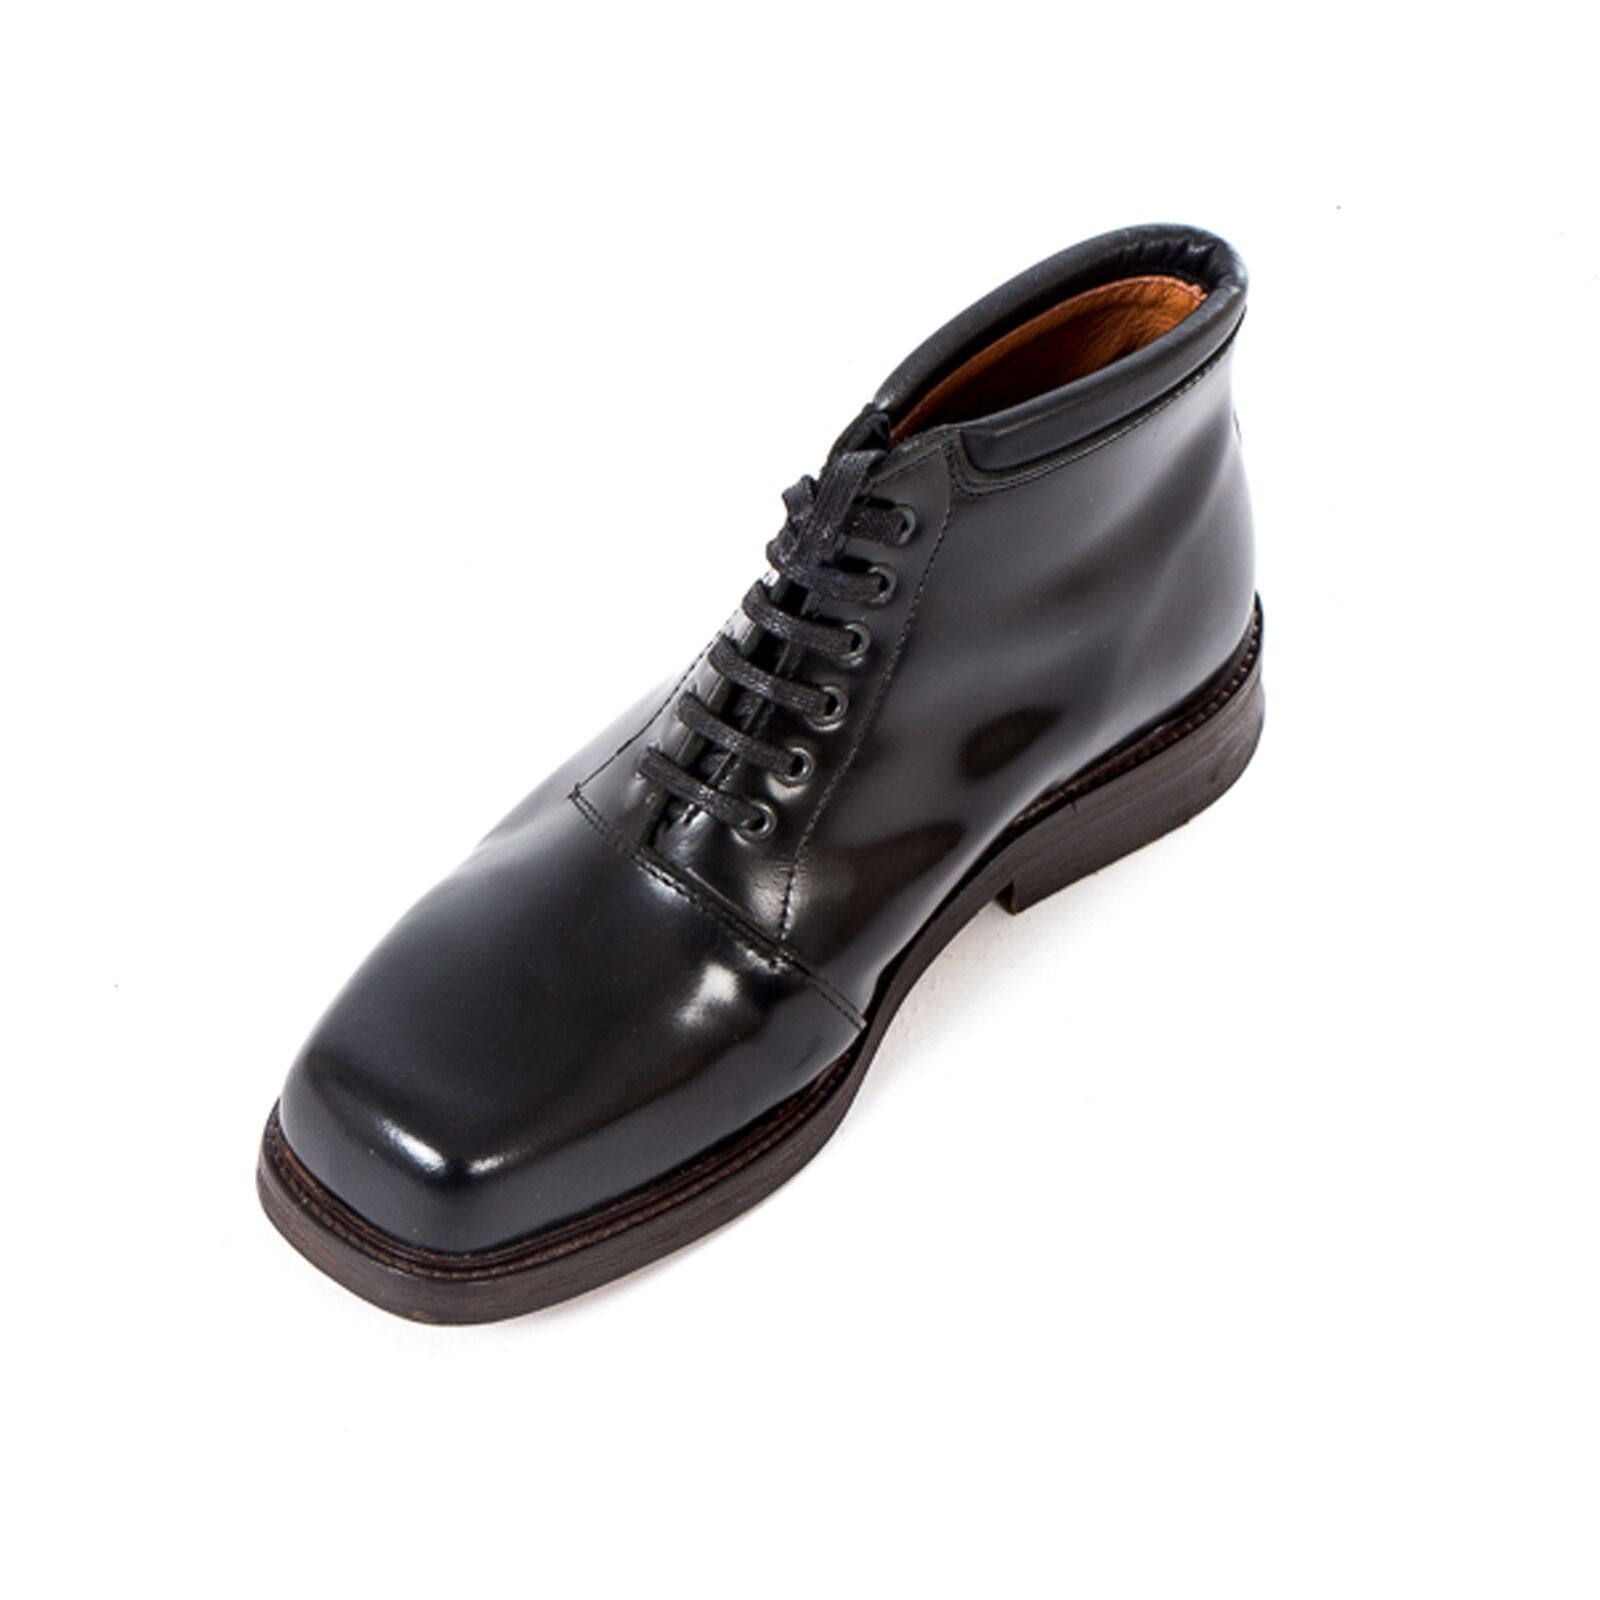 Boots & 4-Loch Braces - Oxford Black 4-Loch & Schuh Ledersohle Business Leder Made in EU 69844b